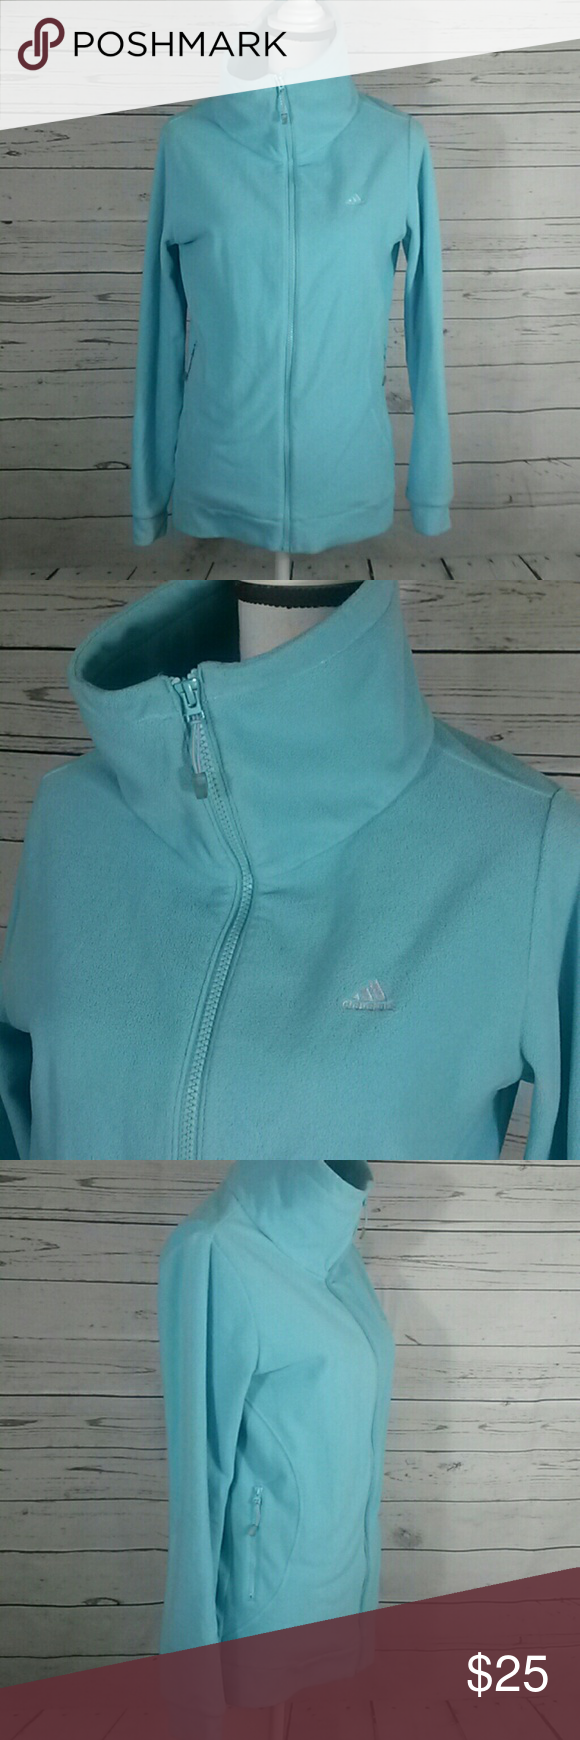 Adidas zip up fleece jacket baby blue size medium my posh picks